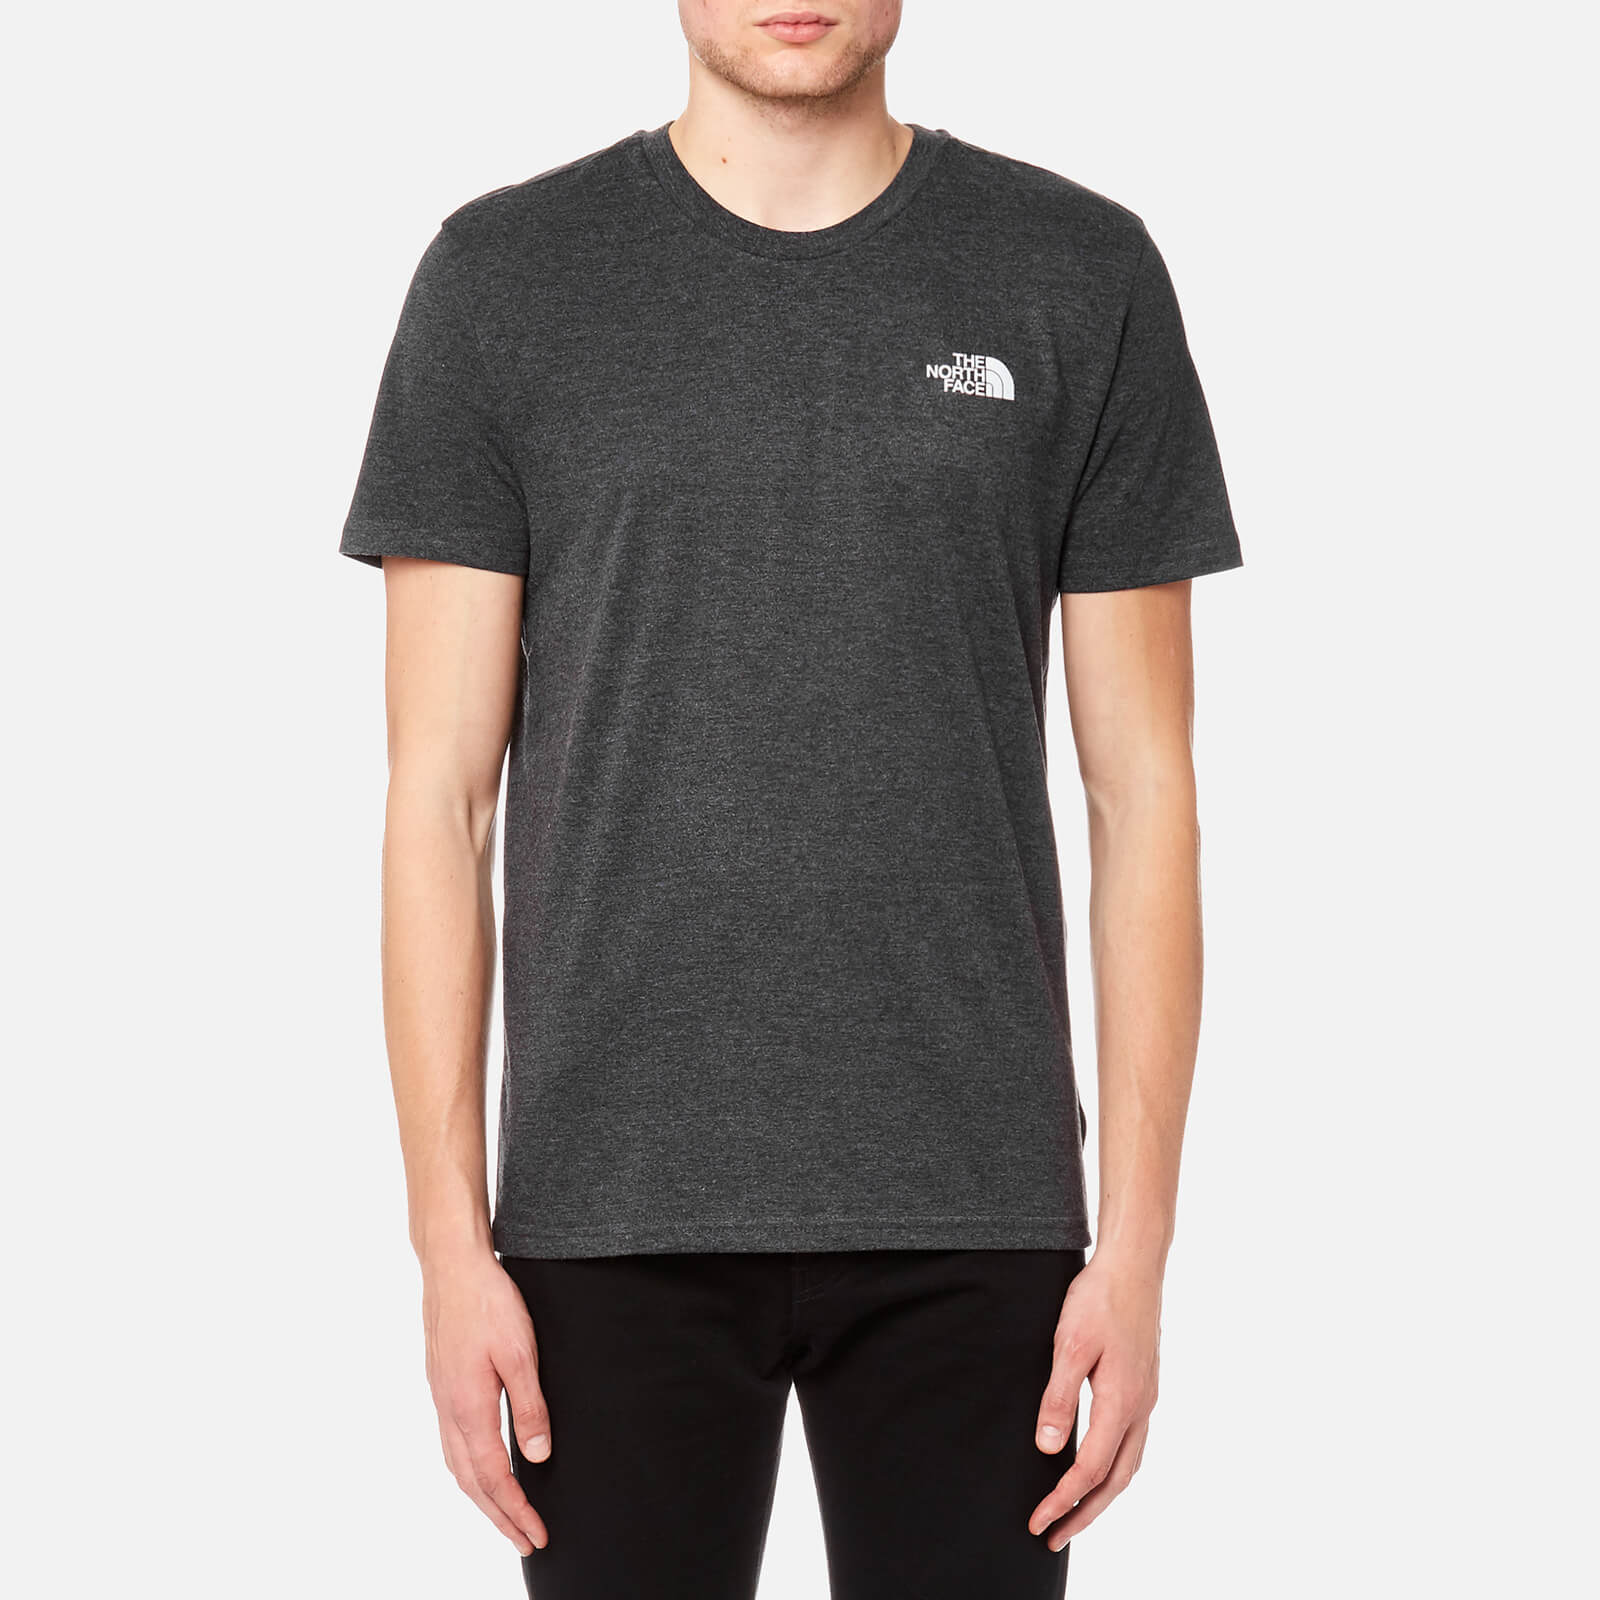 9895c8dc The North Face Men's Short Sleeve Simple Dome T-Shirt - TNF Dark Grey  Heather/Silver Reflective Clothing | TheHut.com